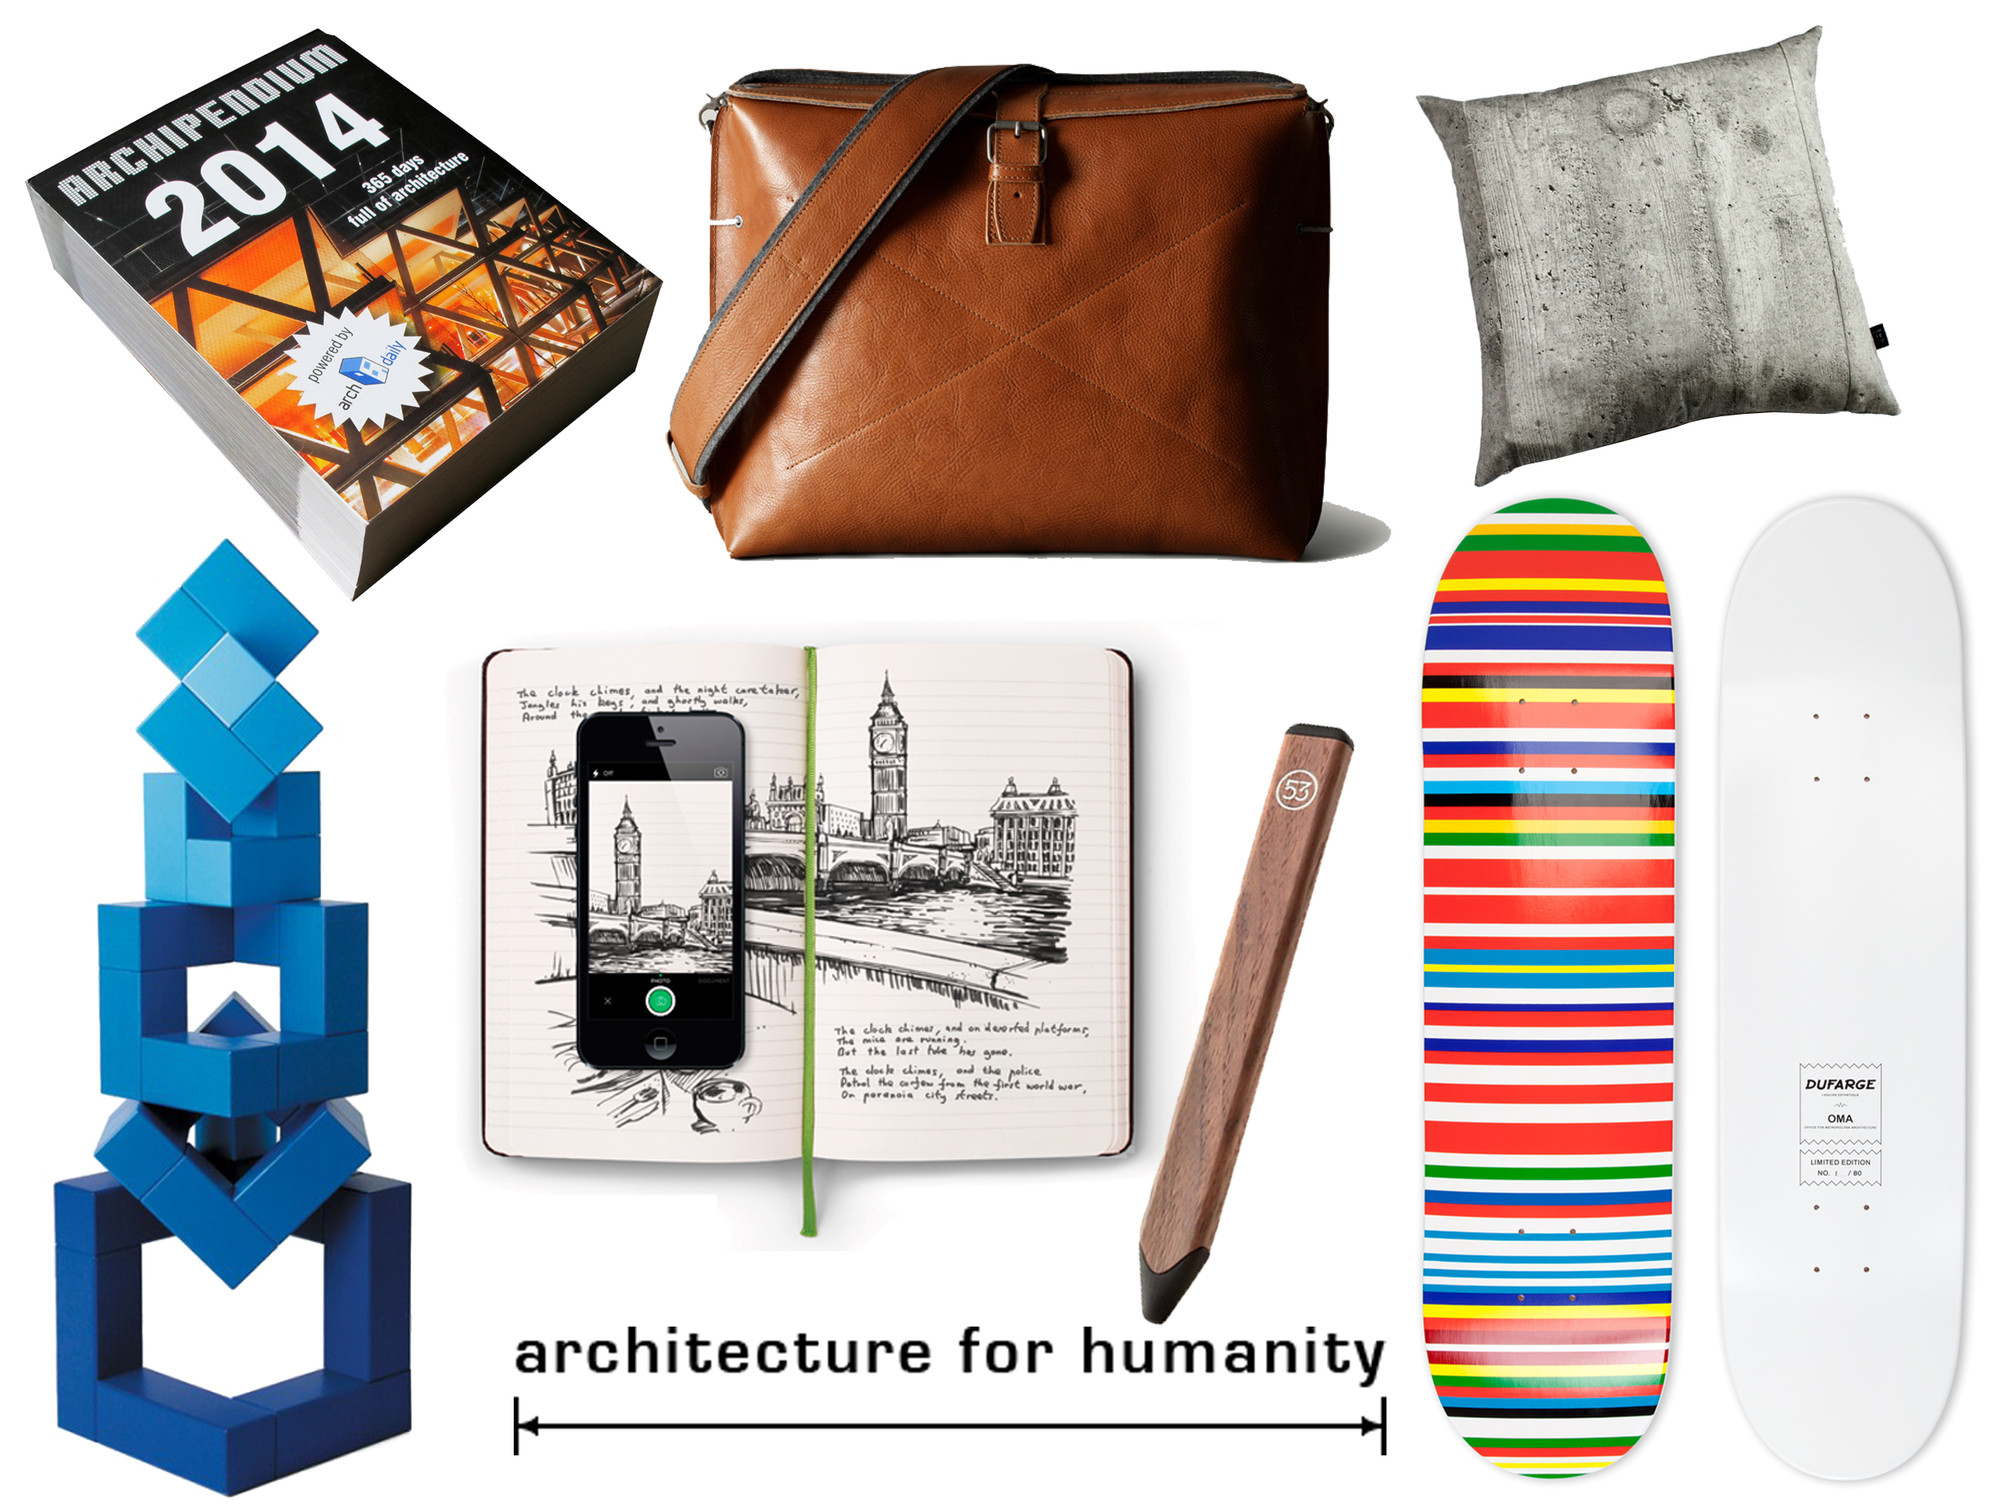 archdaily architect's holiday gift guide 2013 | archdaily